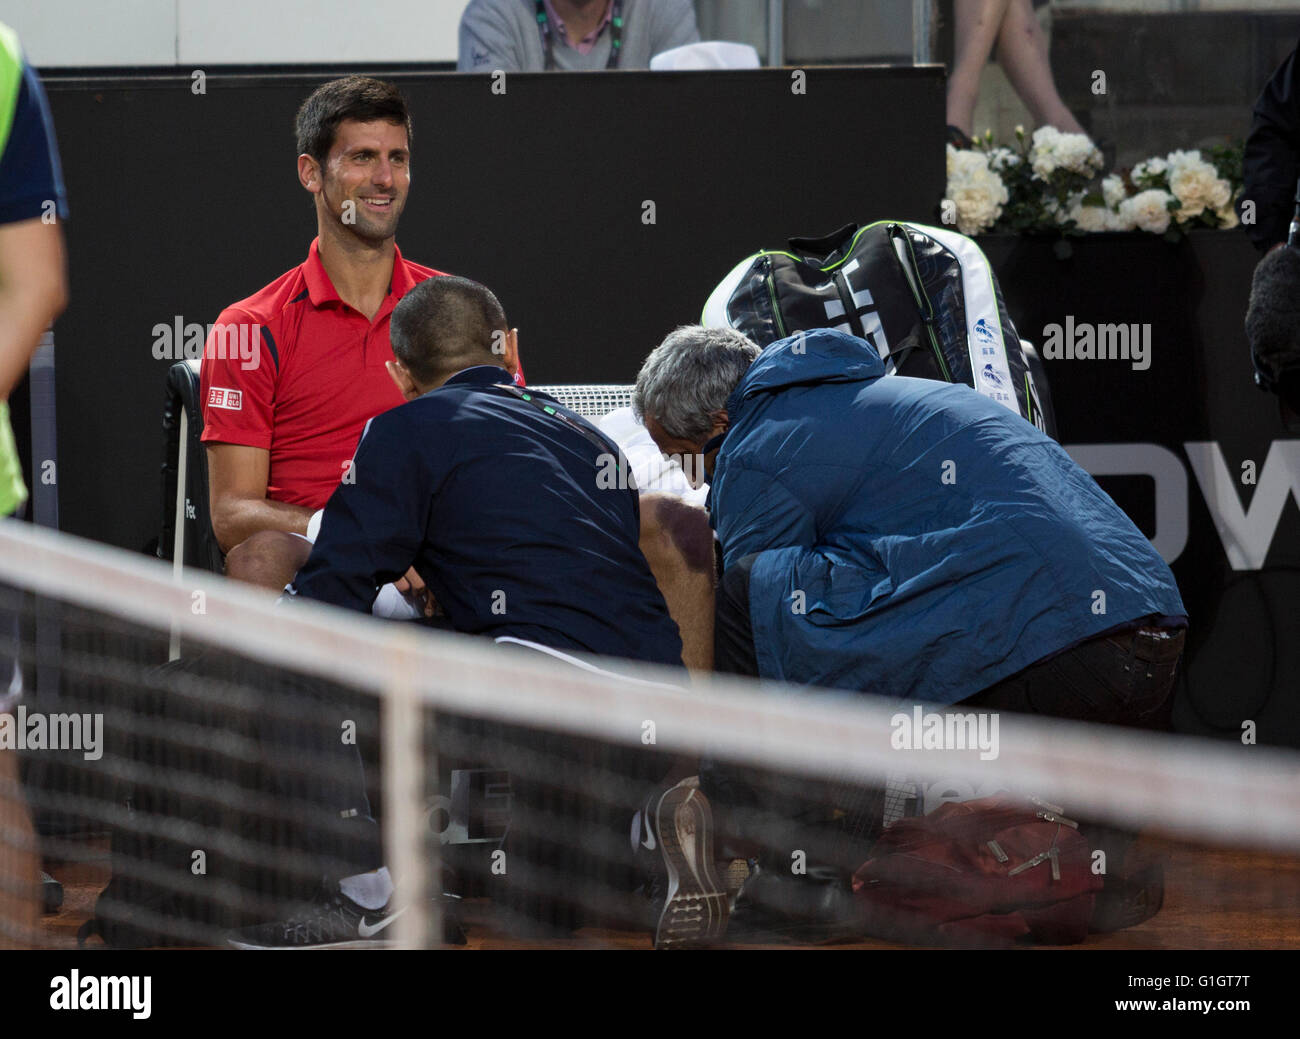 Rome, Italy. 14th May, 2016. Novak Djokovic receives medical attention on his ankle, Foro Italico, Roma, Italy, - Stock Image